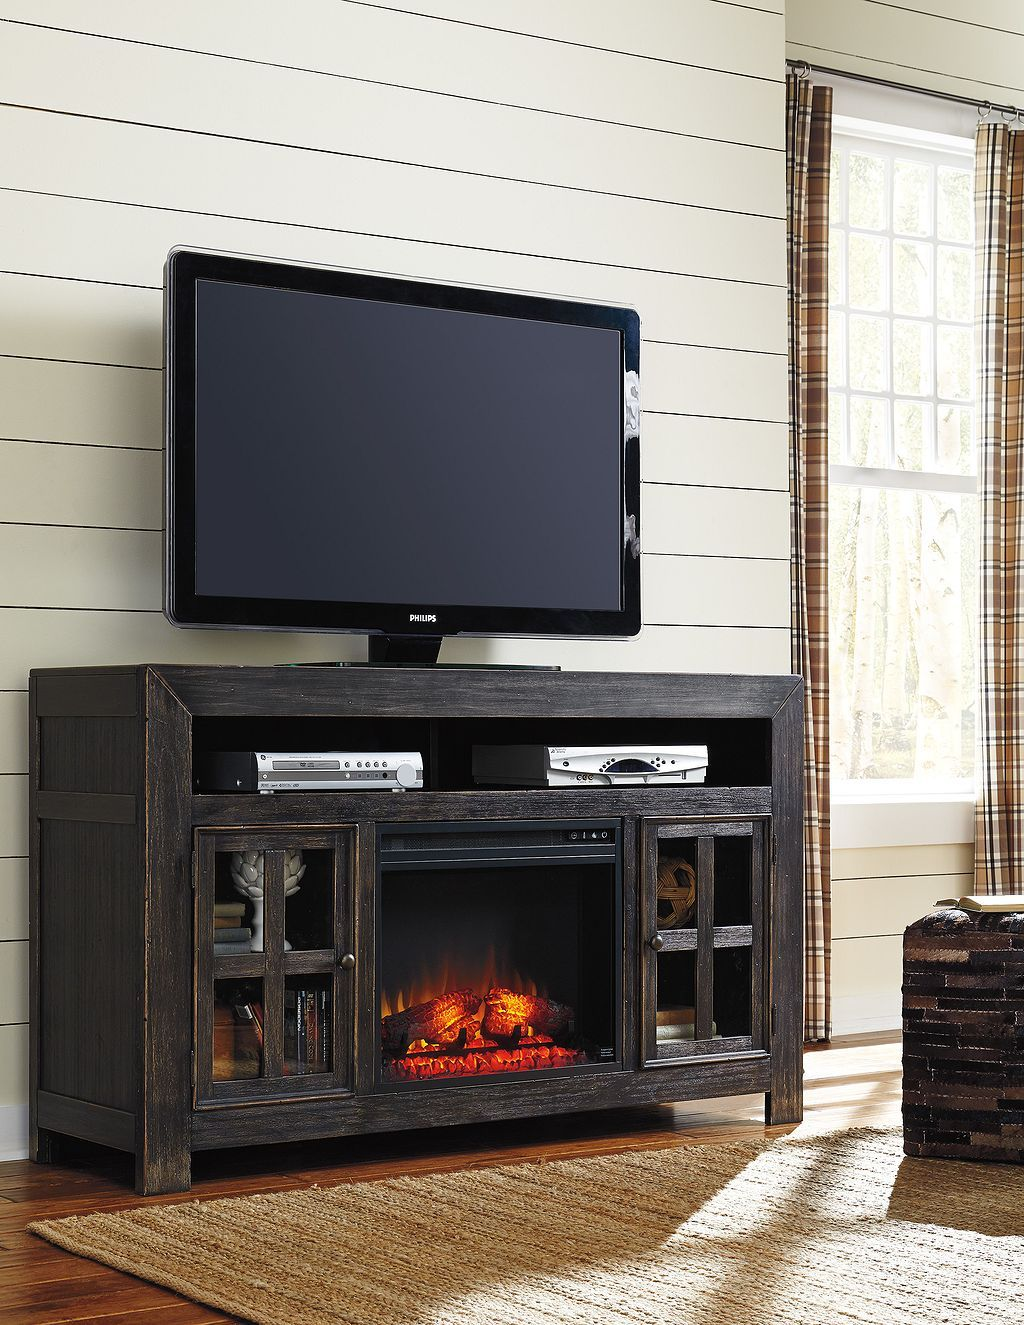 30 Modern Farmhouse Tv Stand Ideas Fireplace Entertainment